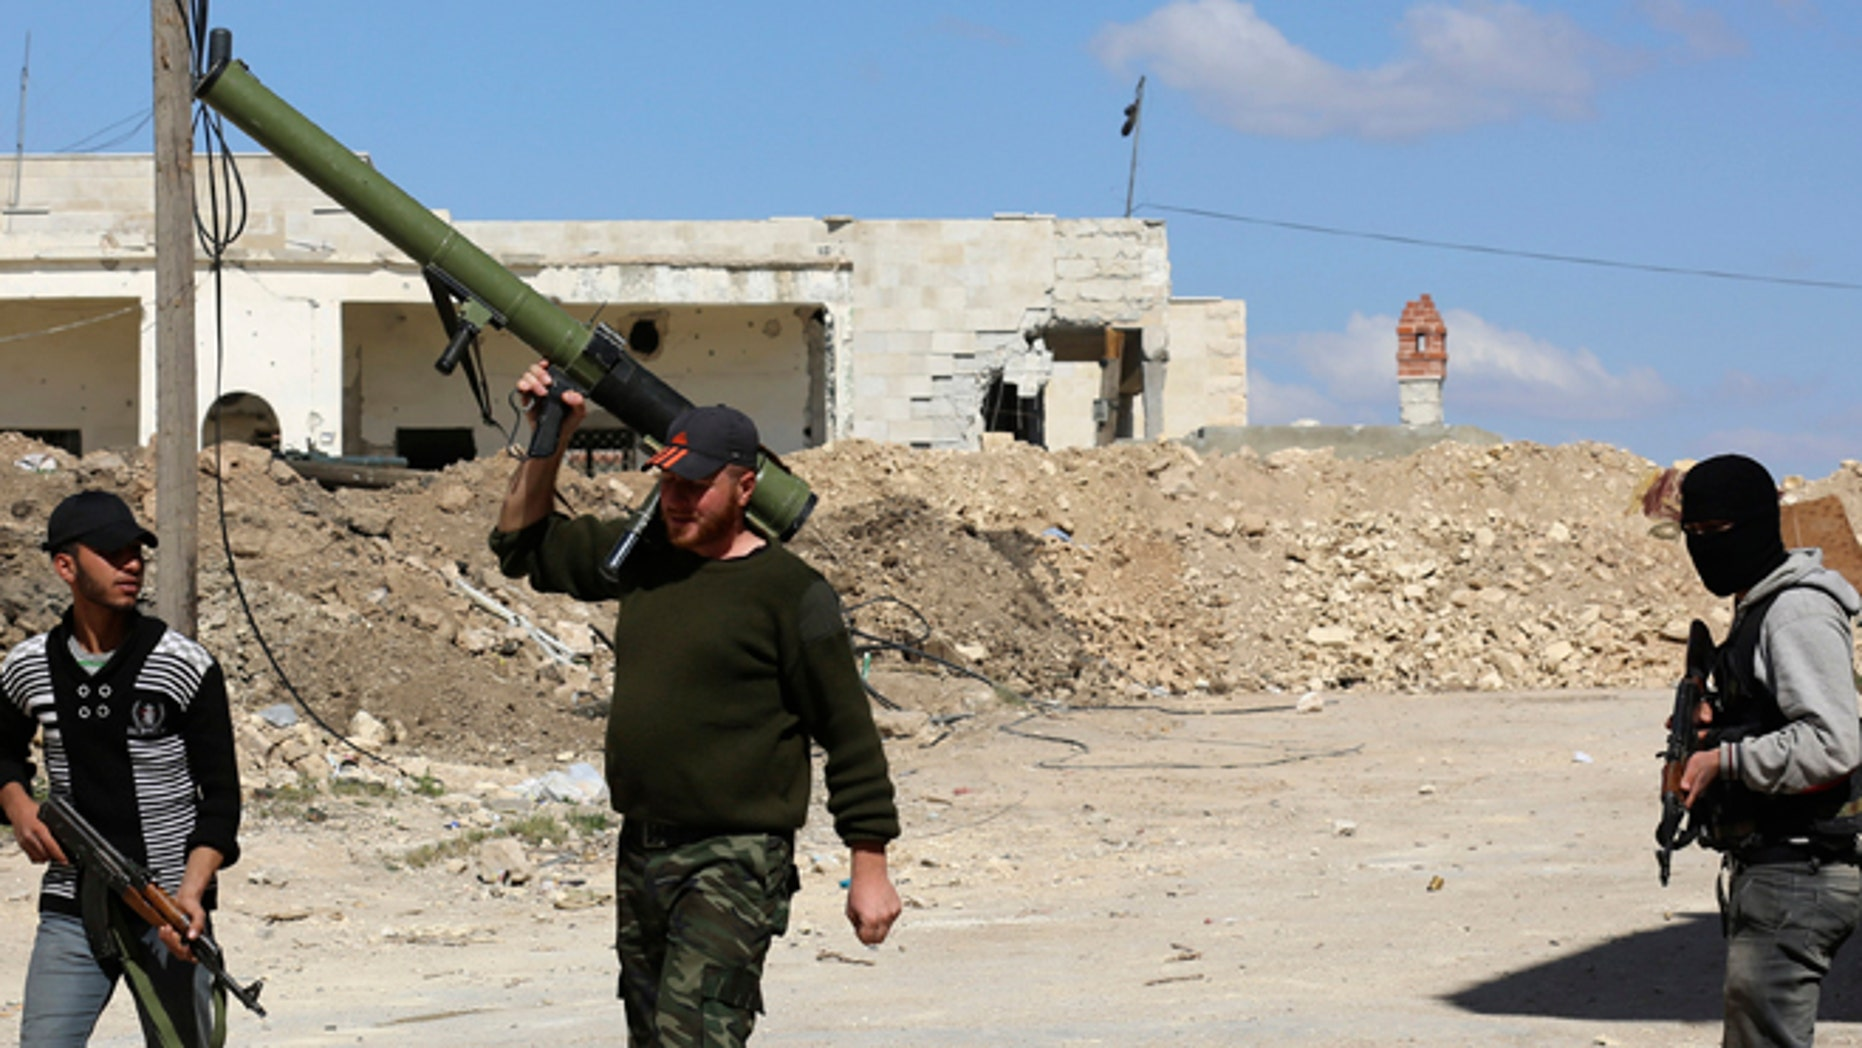 April 9, 2014: Rebel fighters carry their weapons as they walk along a street in the town of Morek in Hama province.